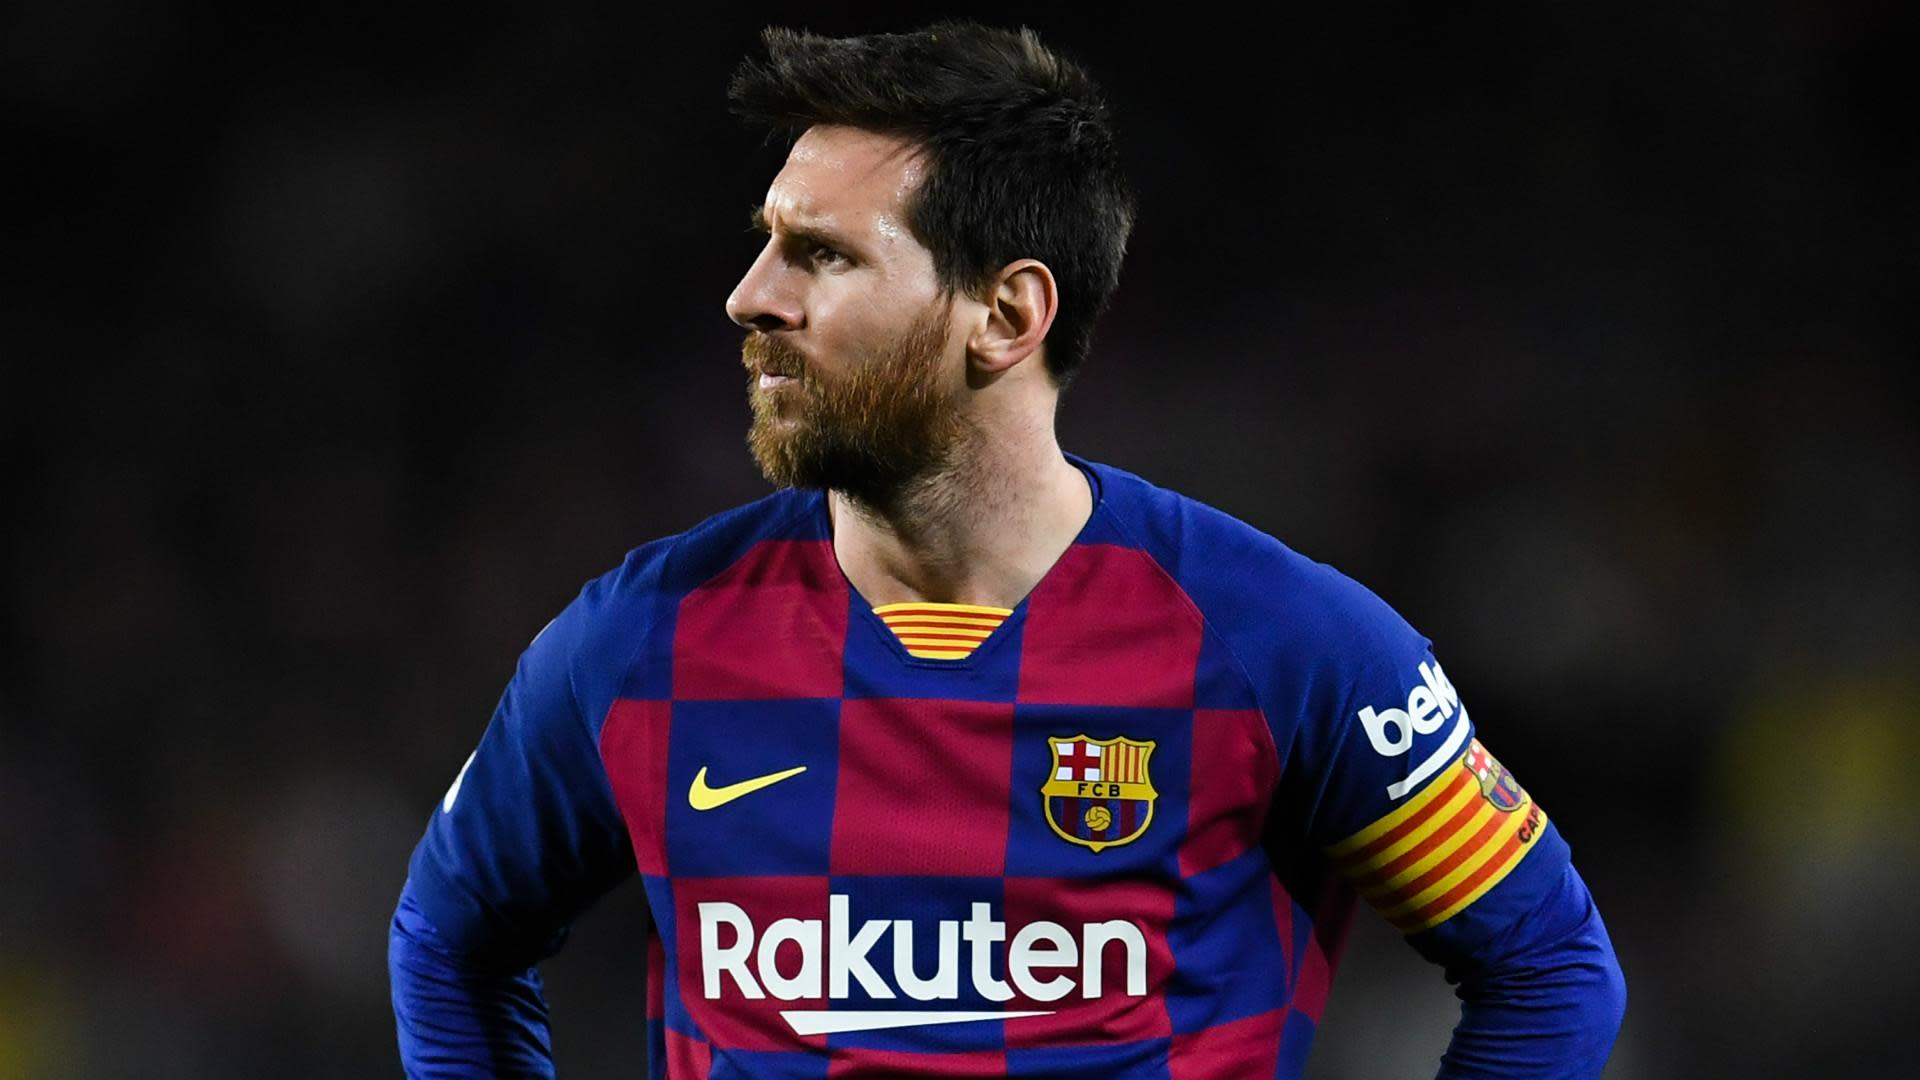 Messi never rejected wage cuts, says Barcelona president Bartomeu